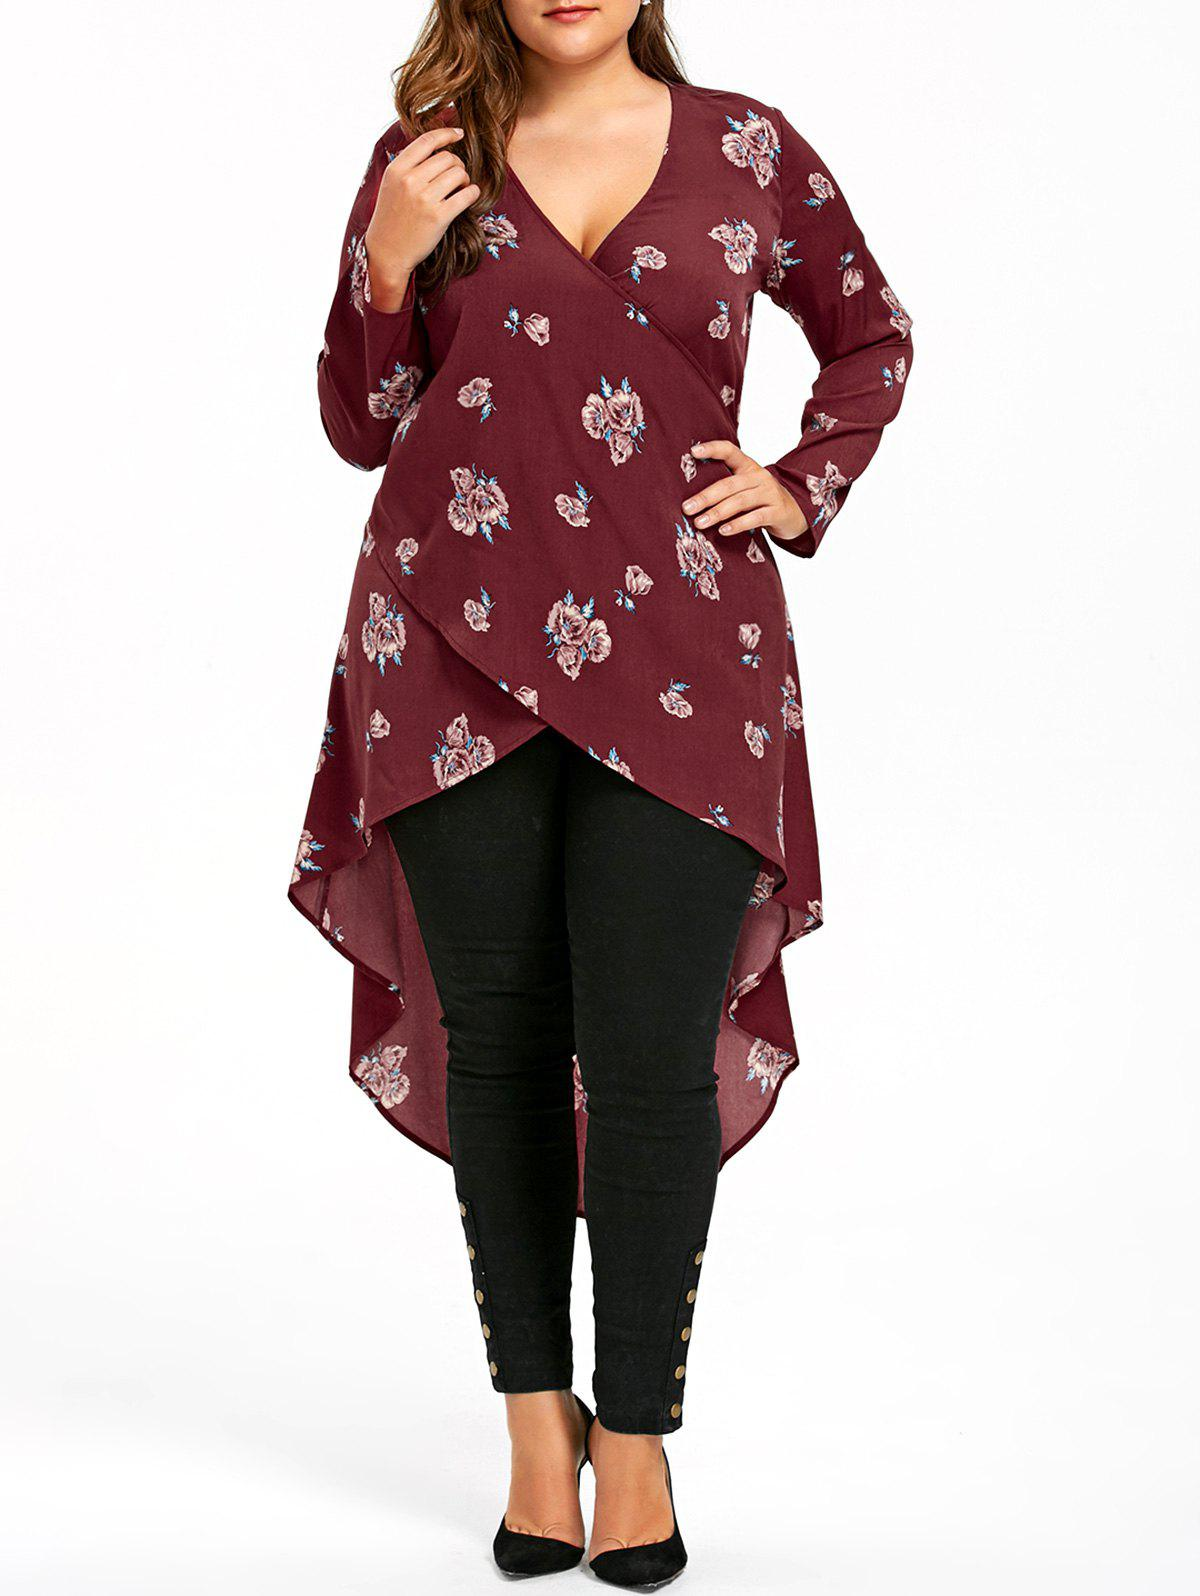 Plus Size Crossover Tiny Floral Dip Hem BlouseWOMEN<br><br>Size: 5XL; Color: BRICK-RED; Material: Rayon; Shirt Length: Long; Sleeve Length: Full; Collar: V-Neck; Style: Casual; Season: Fall,Spring; Pattern Type: Floral; Weight: 0.3000kg; Package Contents: 1 x Dress;